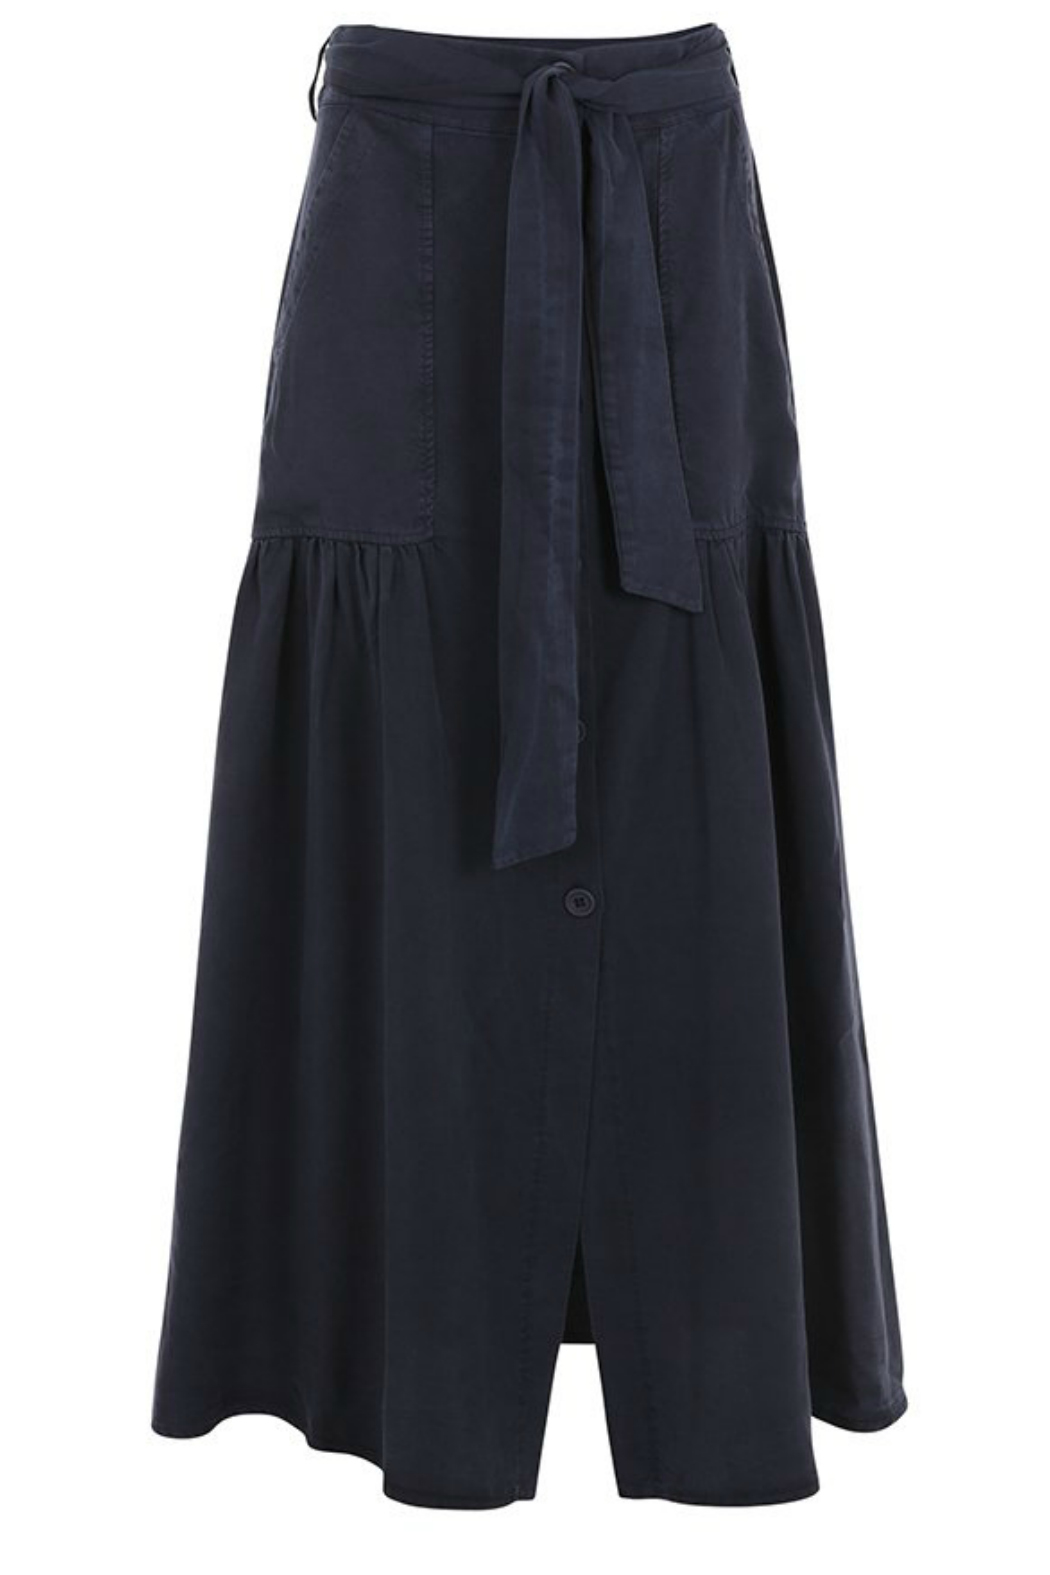 SUZY D Utility Button  Maxi Skirt - Main Image